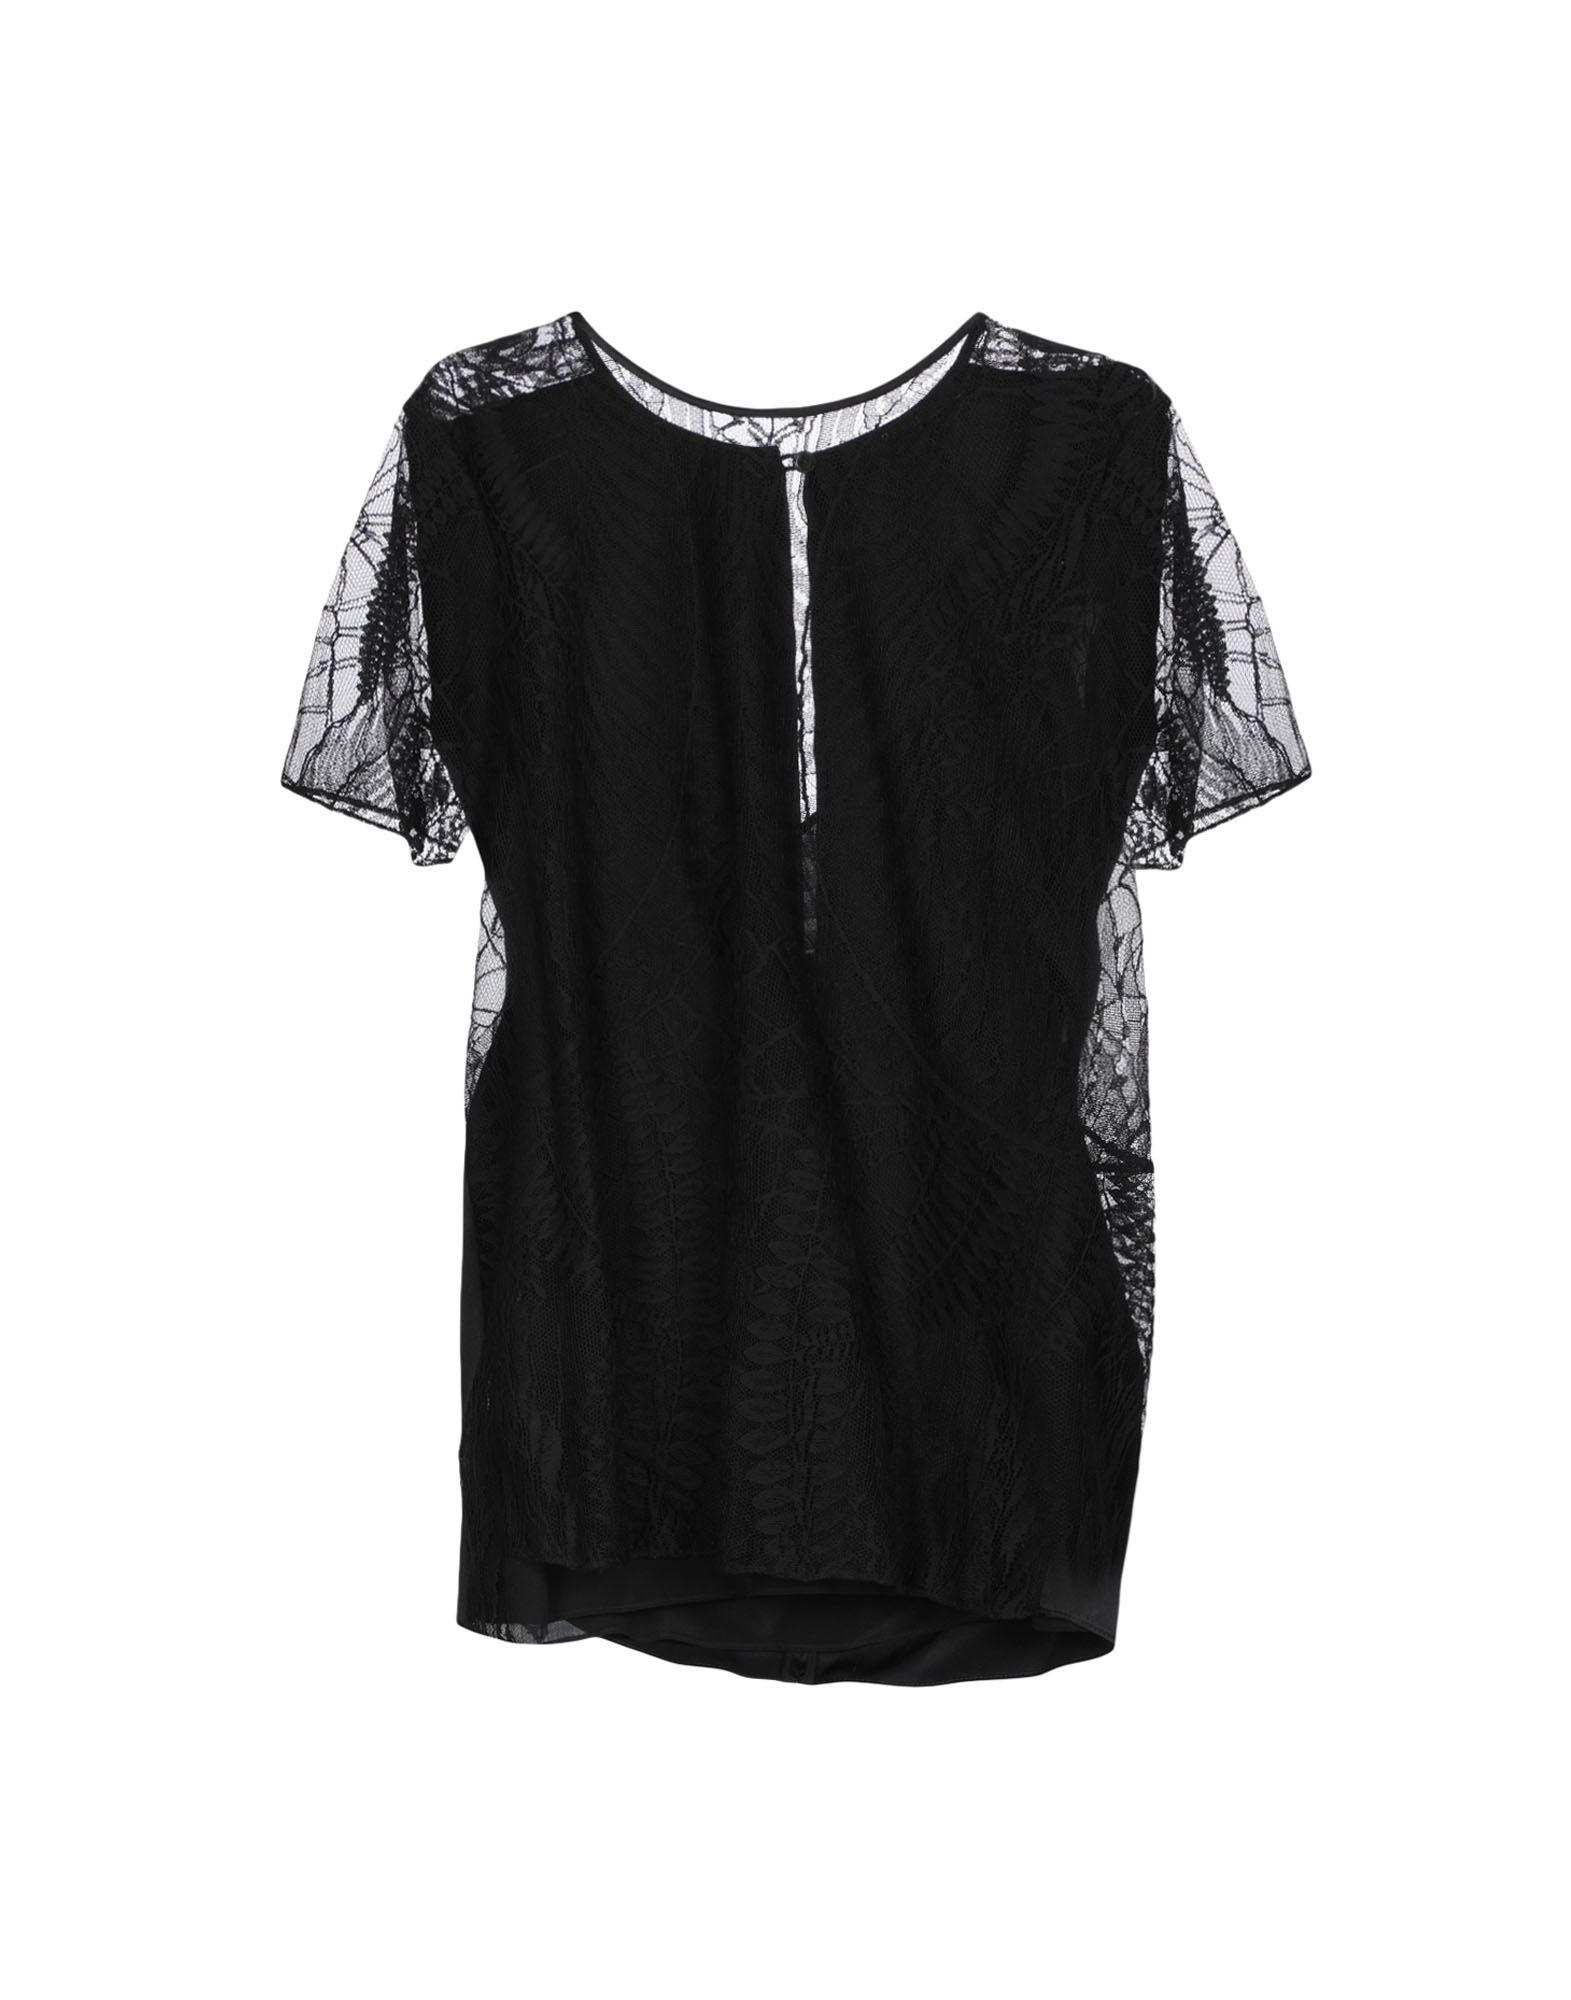 e4310575d gucci tops & blouses tops for women - Buy best women's gucci tops & blouses  tops on Cools.com Shop